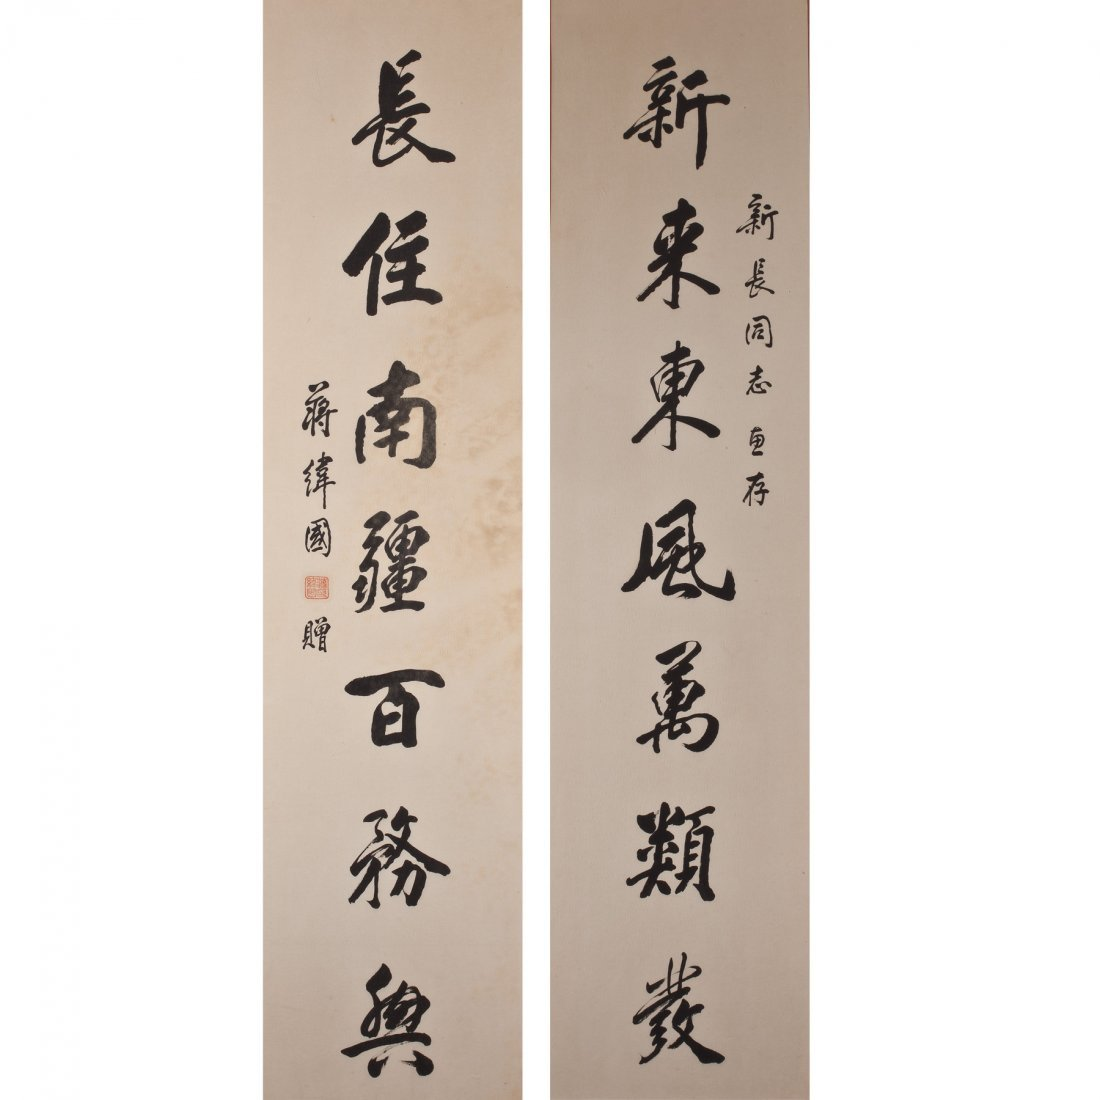 COUPLET IN RUNNING SCRIPT BY JIANG WEIGUO